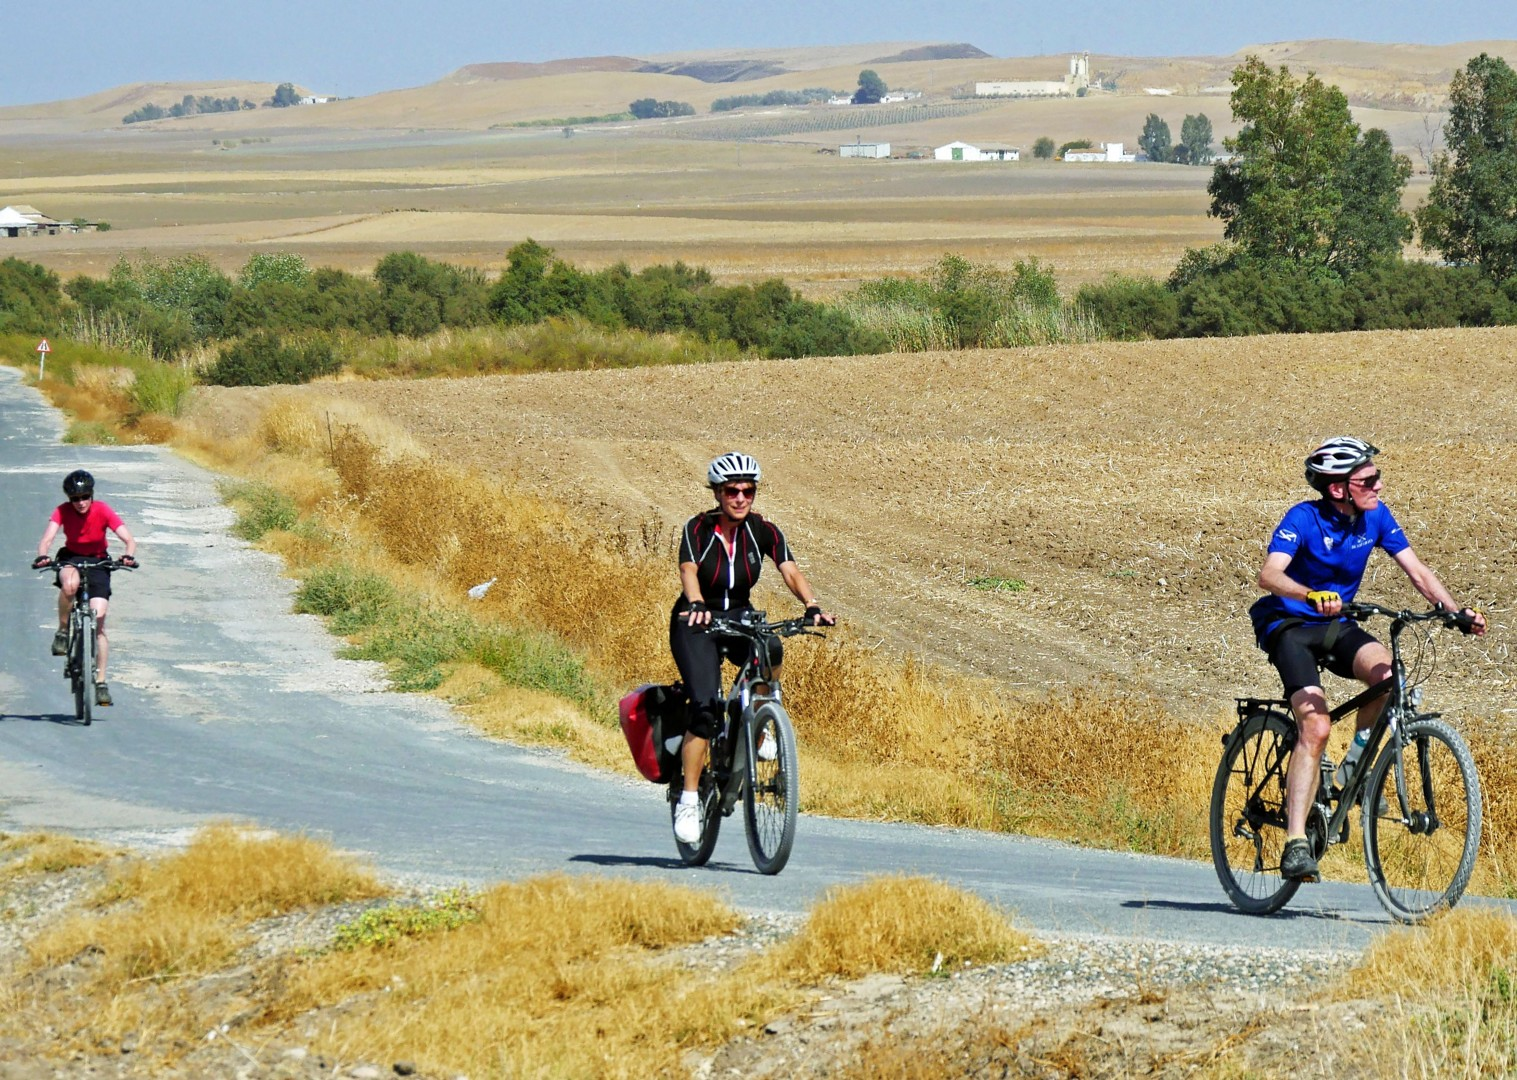 spain-granada-to-seville-guided-leisure-cycling-holiday.jpg - Southern Spain - Granada to Seville - Guided Leisure Cycling Holiday - Leisure Cycling